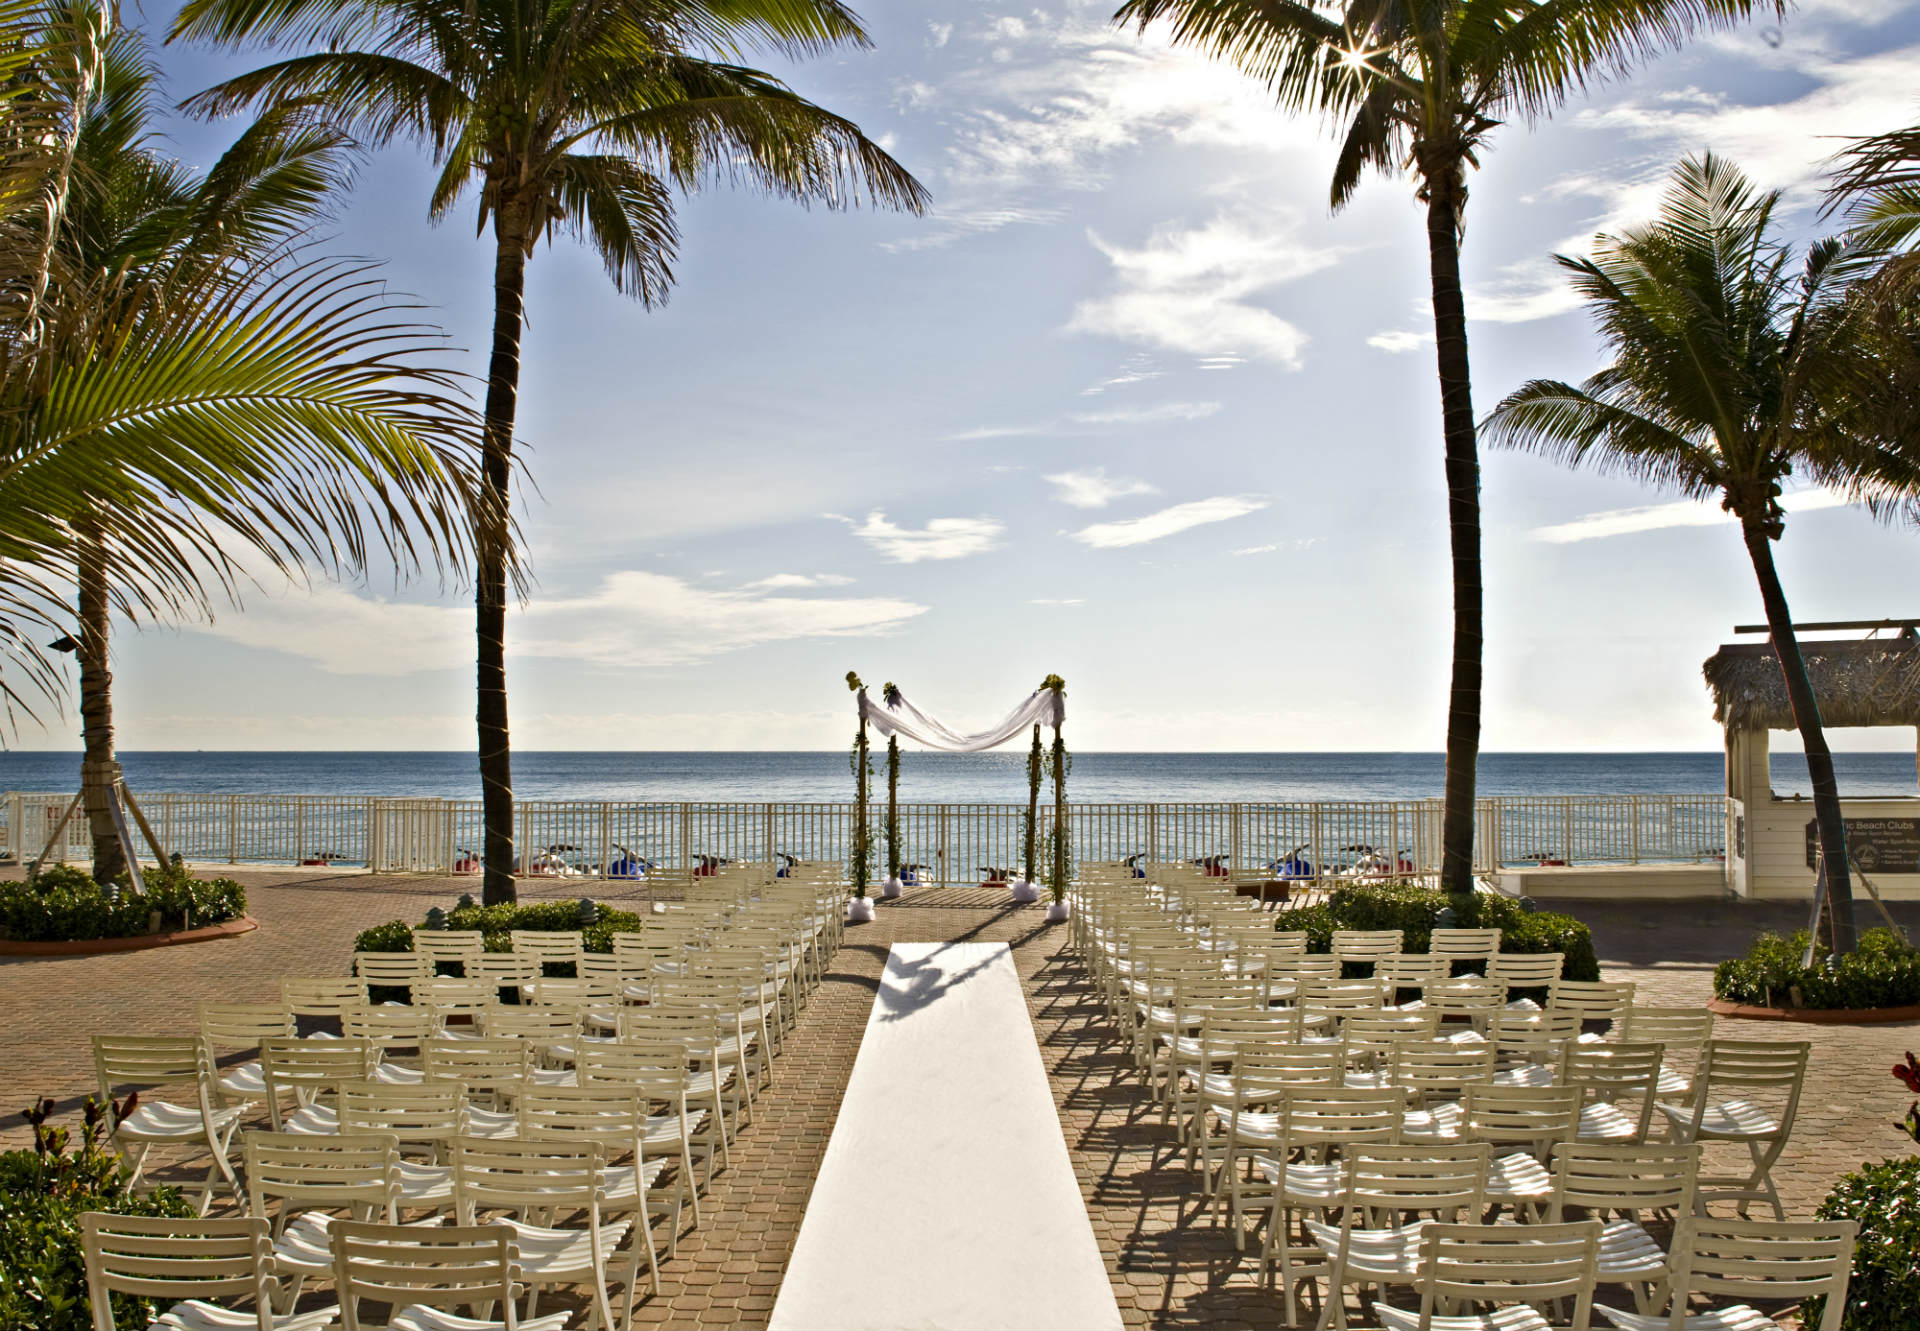 Wedding Venues in Ft. Lauderdale